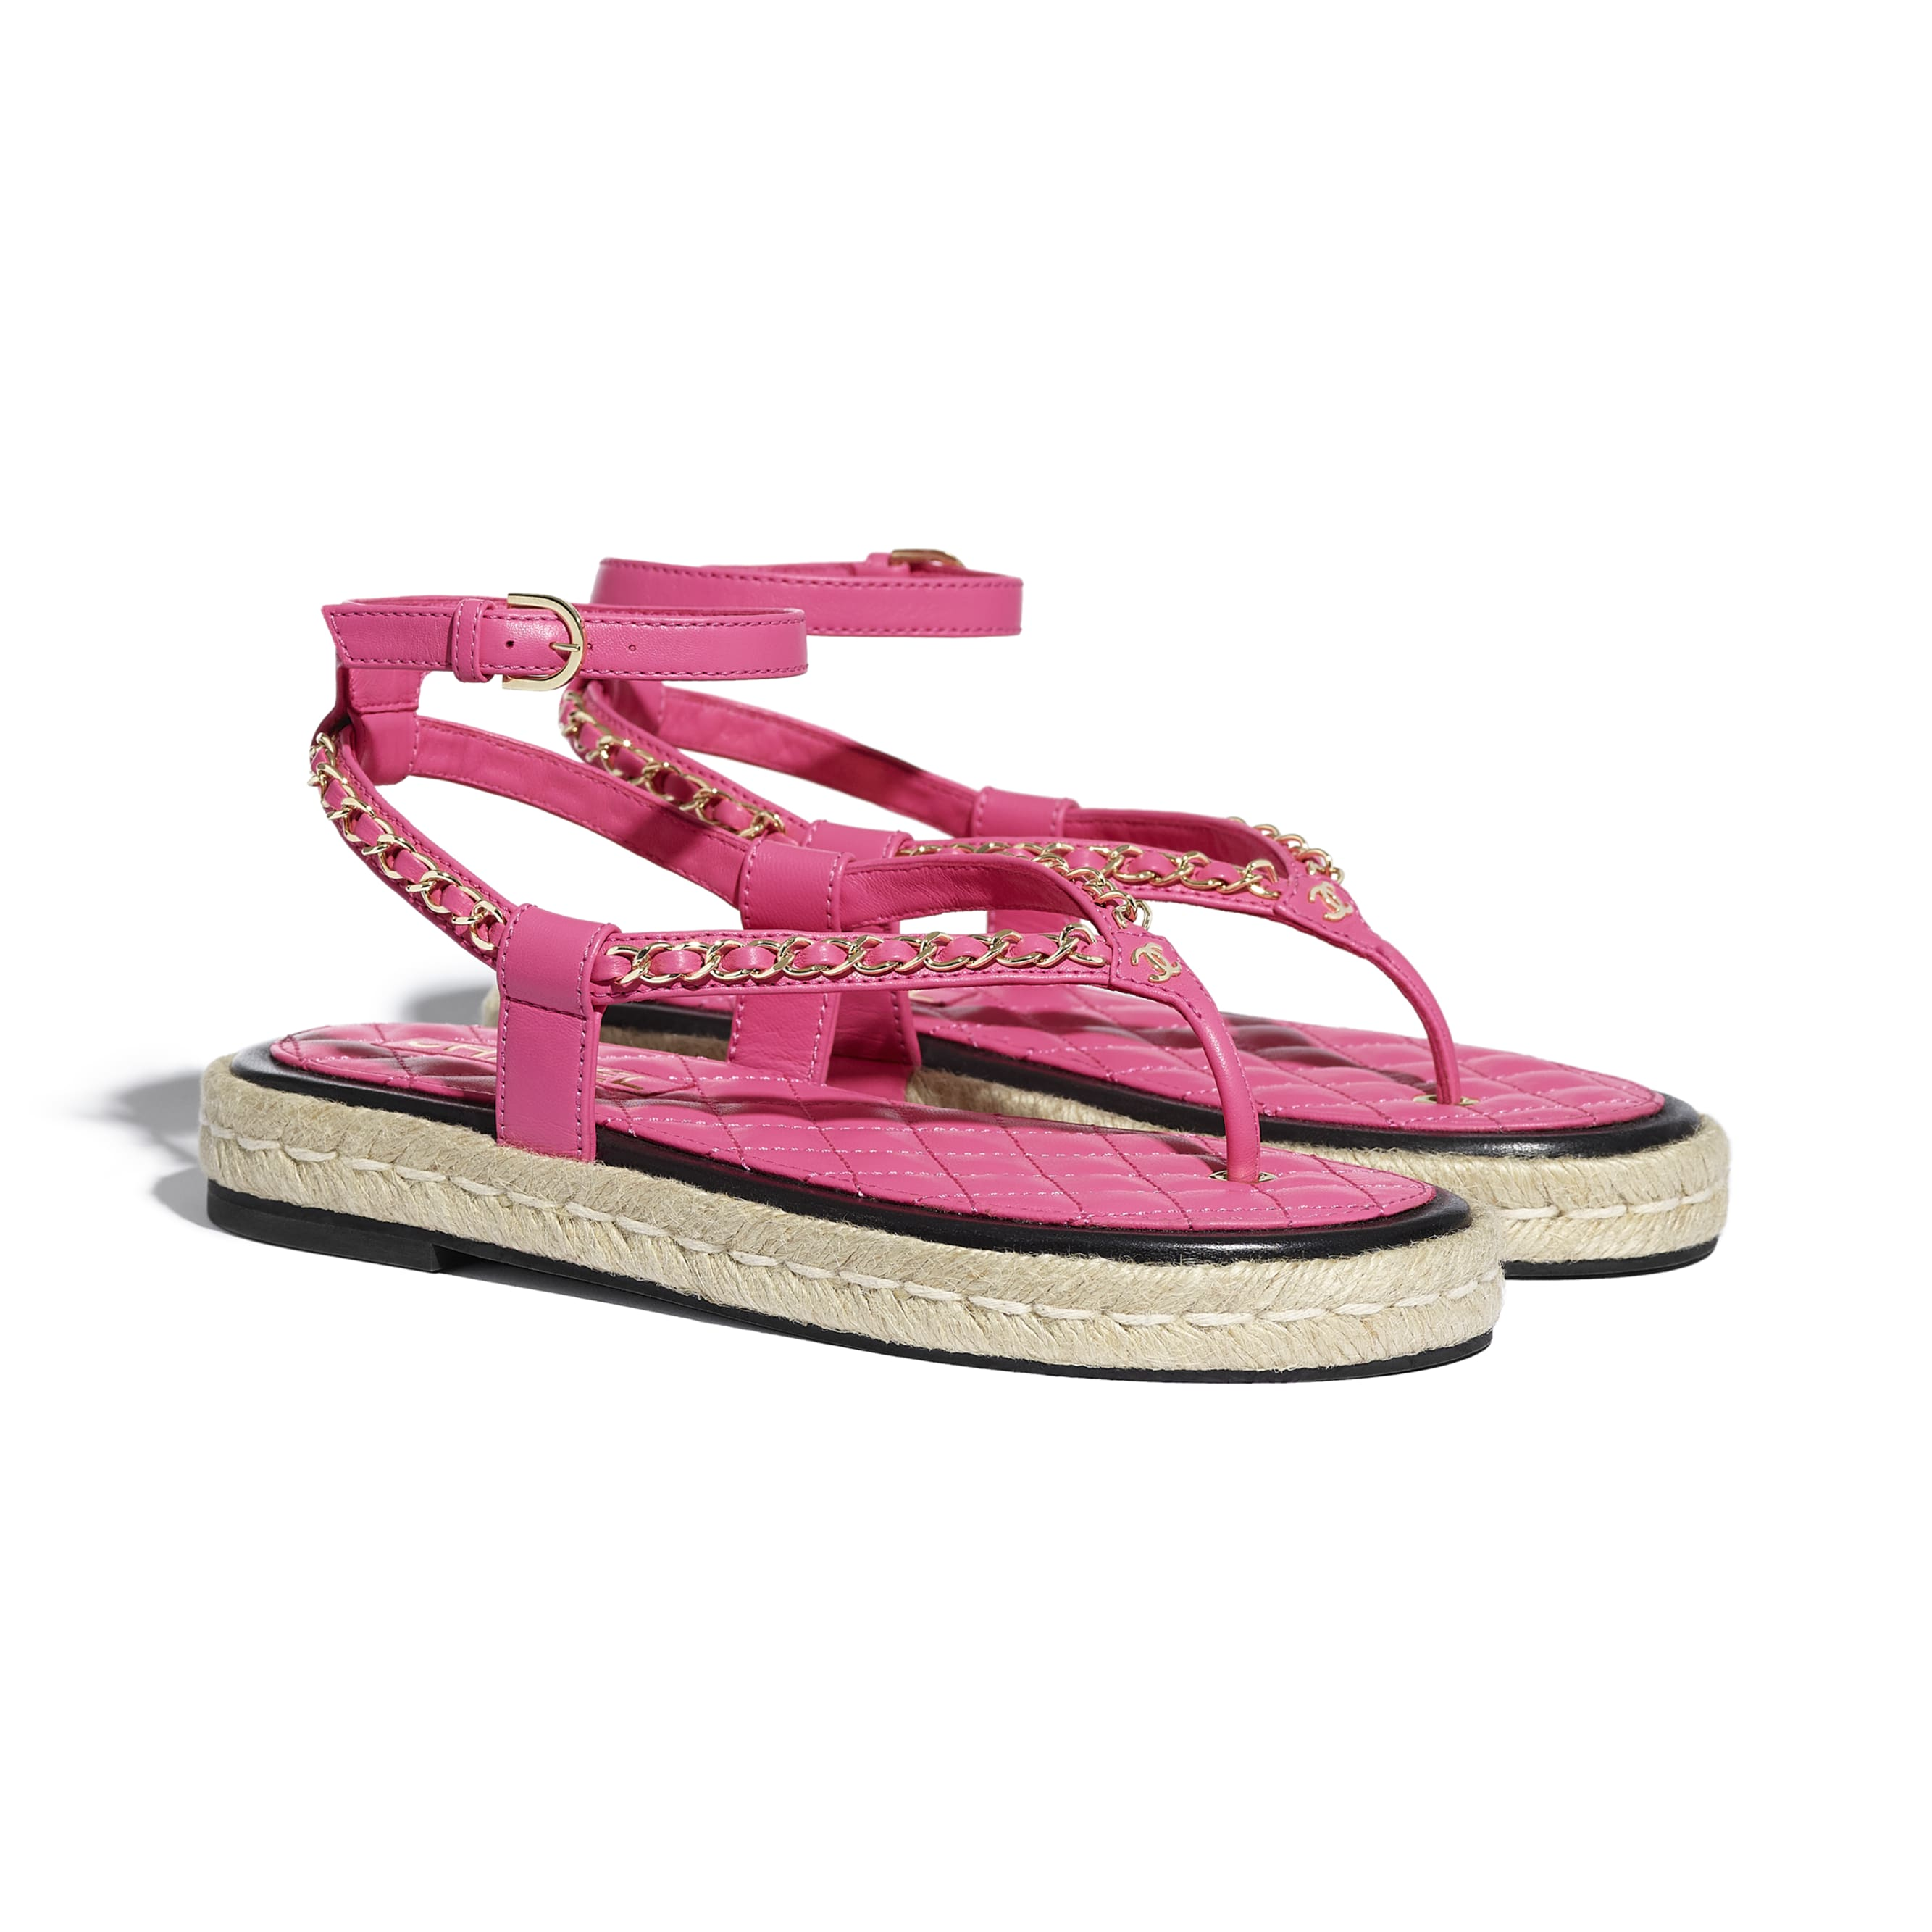 Sandals - Pink - Lambskin - CHANEL - Alternative view - see standard sized version